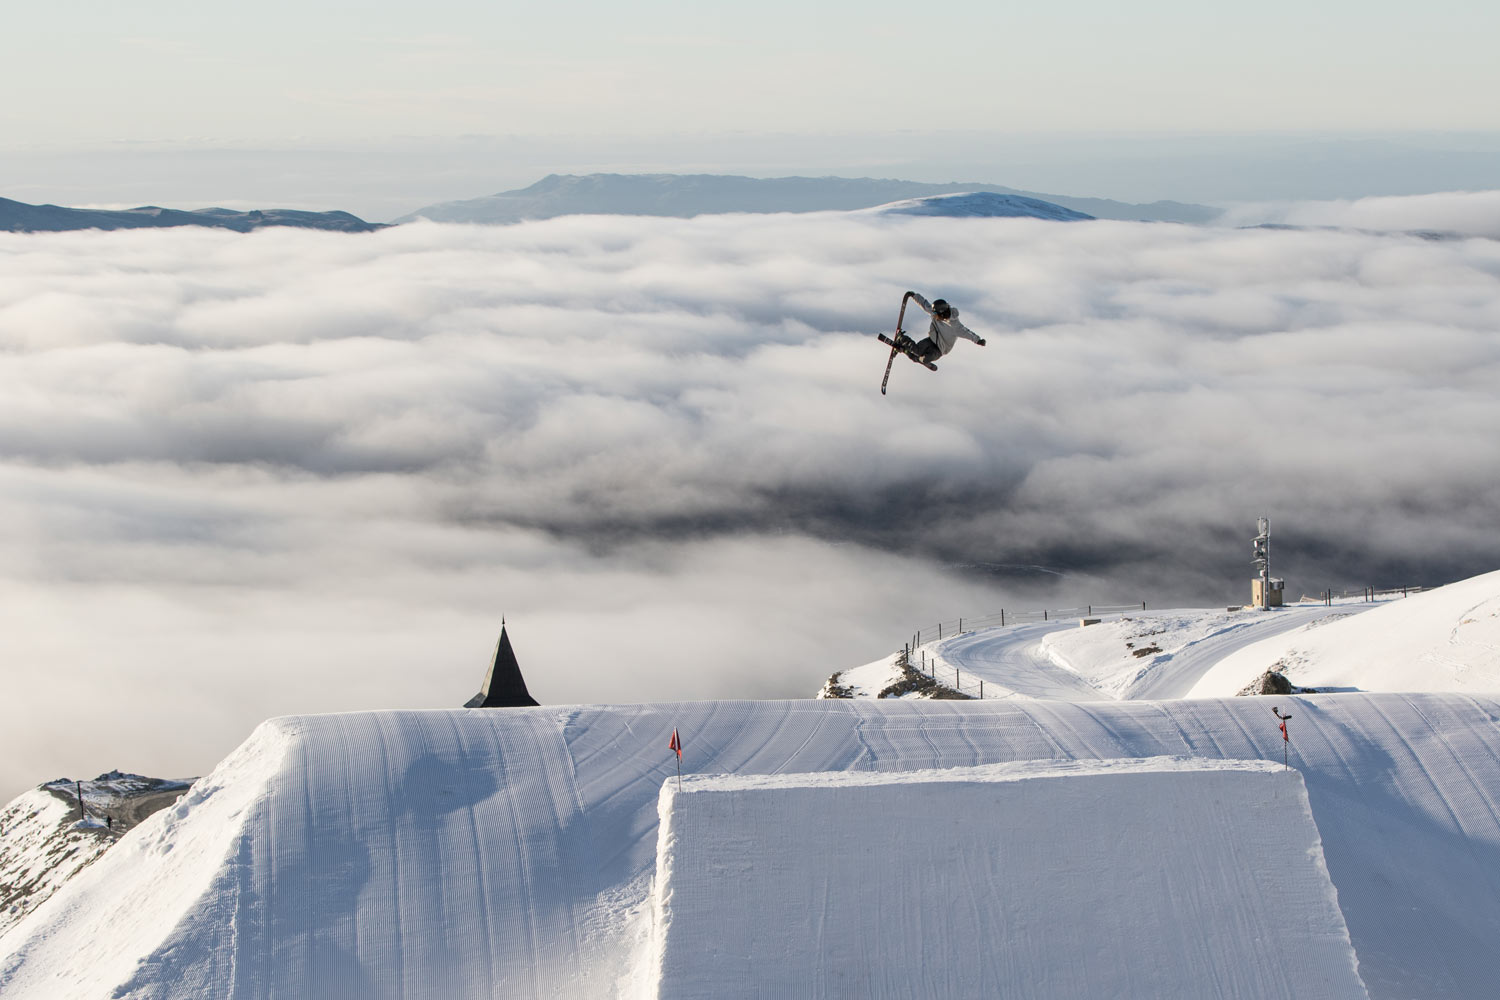 Cardrona-Beau-James-Wells-Big-Air-wanakaski--skiwanaka